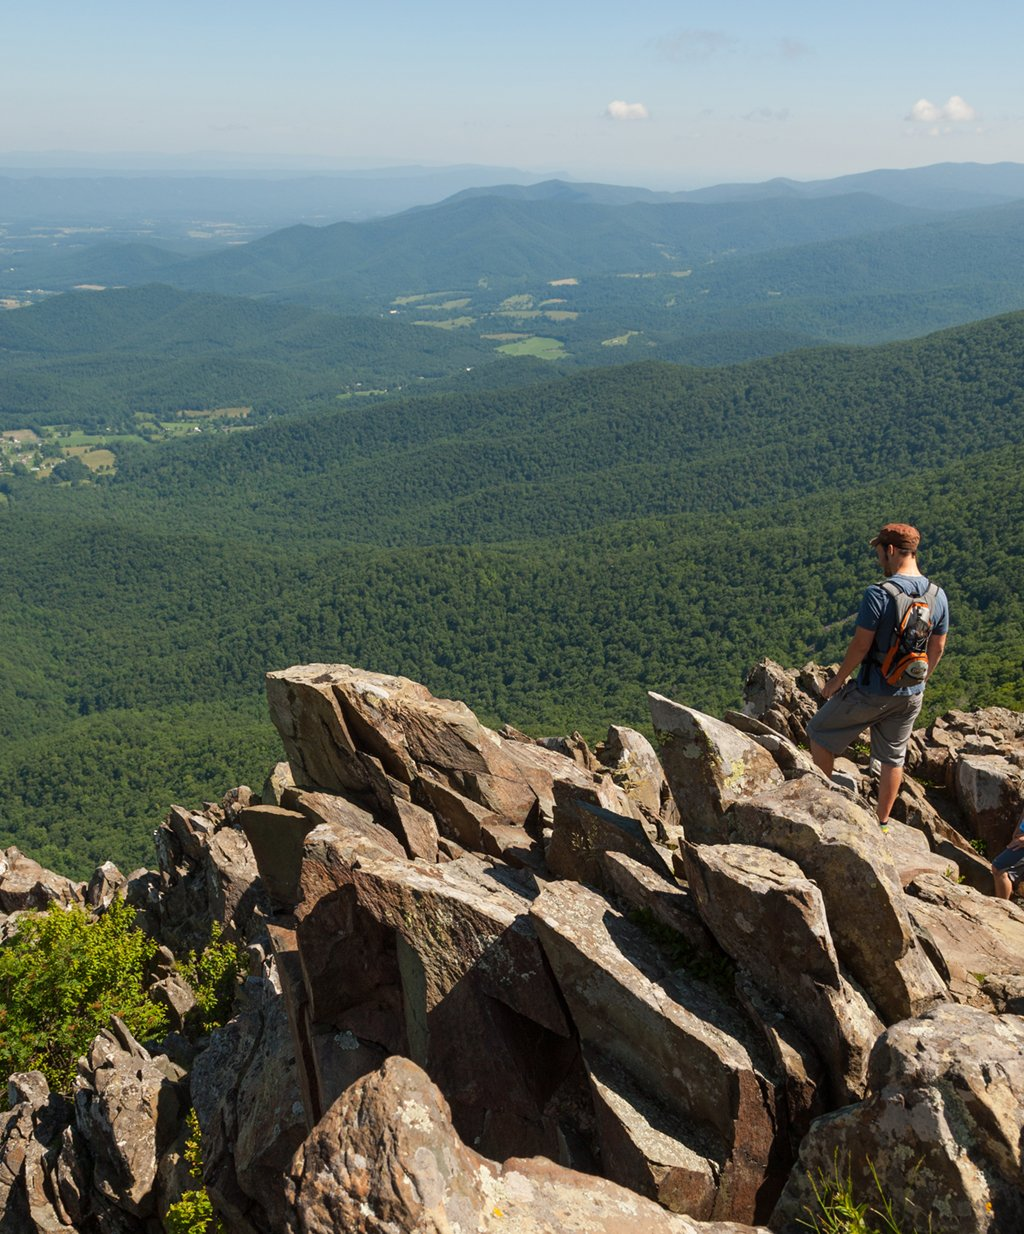 great hikes near dc